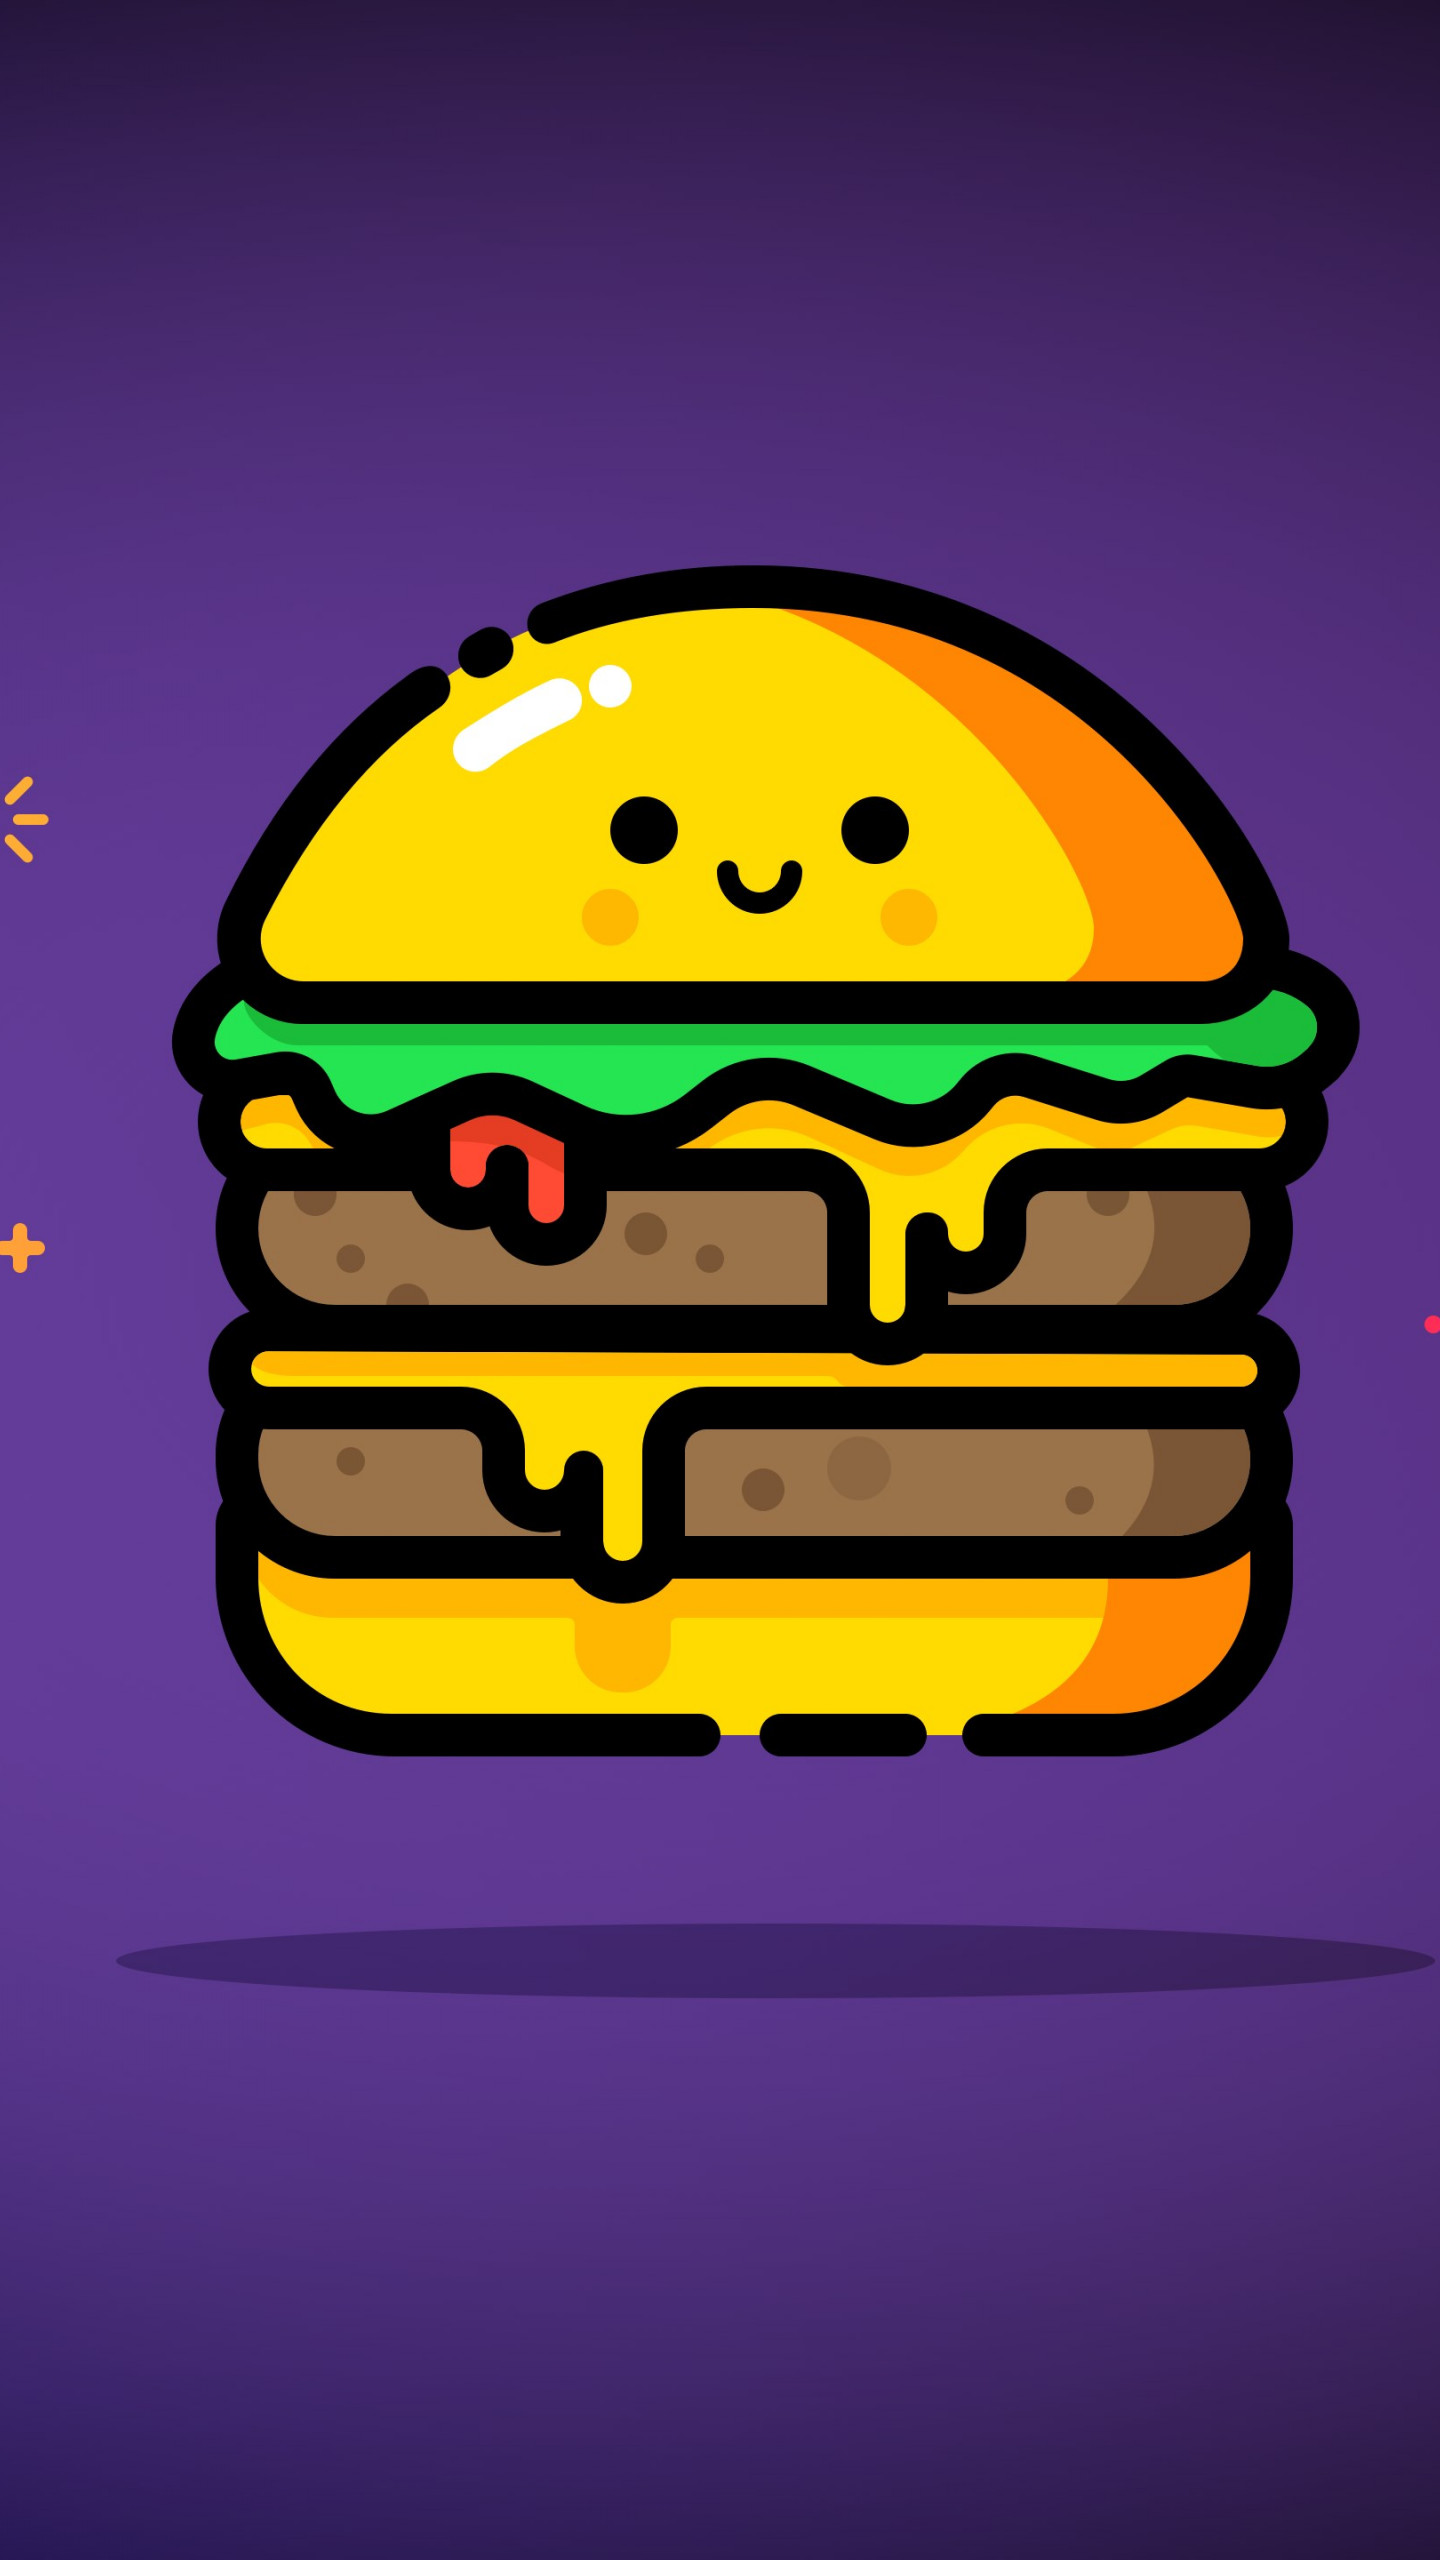 Double cheese wallpaper 1440x2560